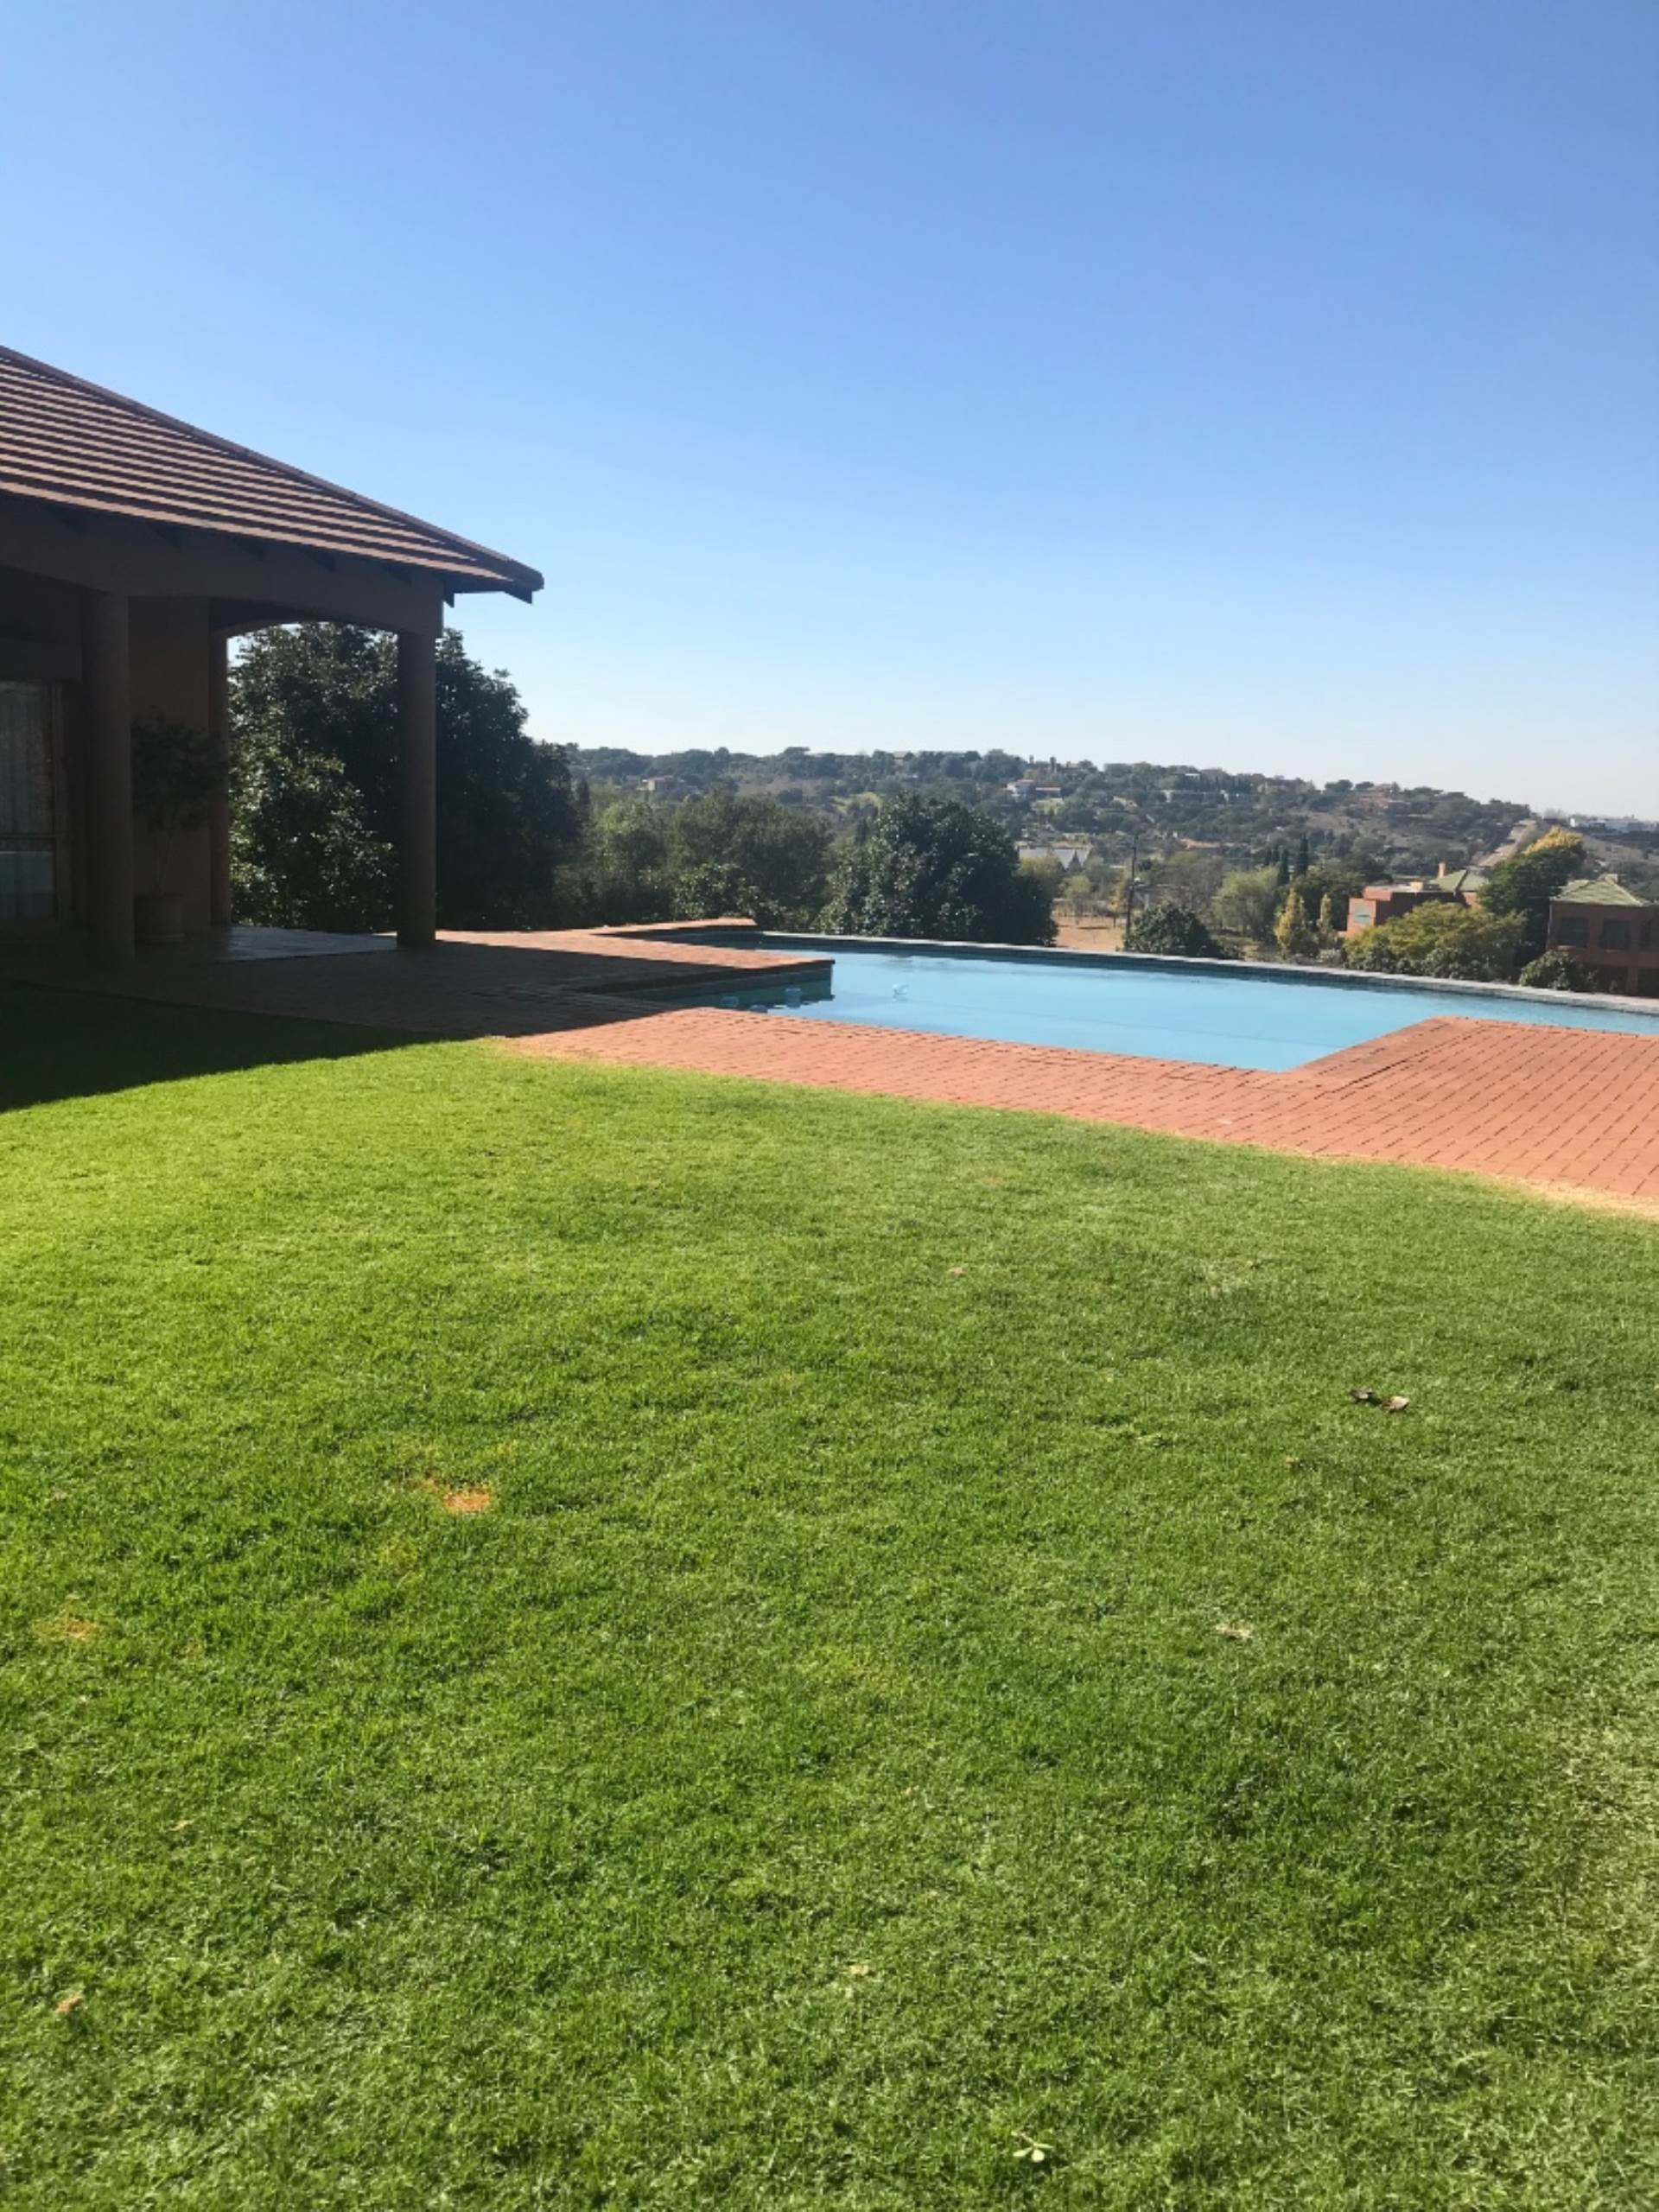 Property and Houses for sale in Mooikloof Equestrian Estate, House, 4 Bedrooms - ZAR 5,900,000